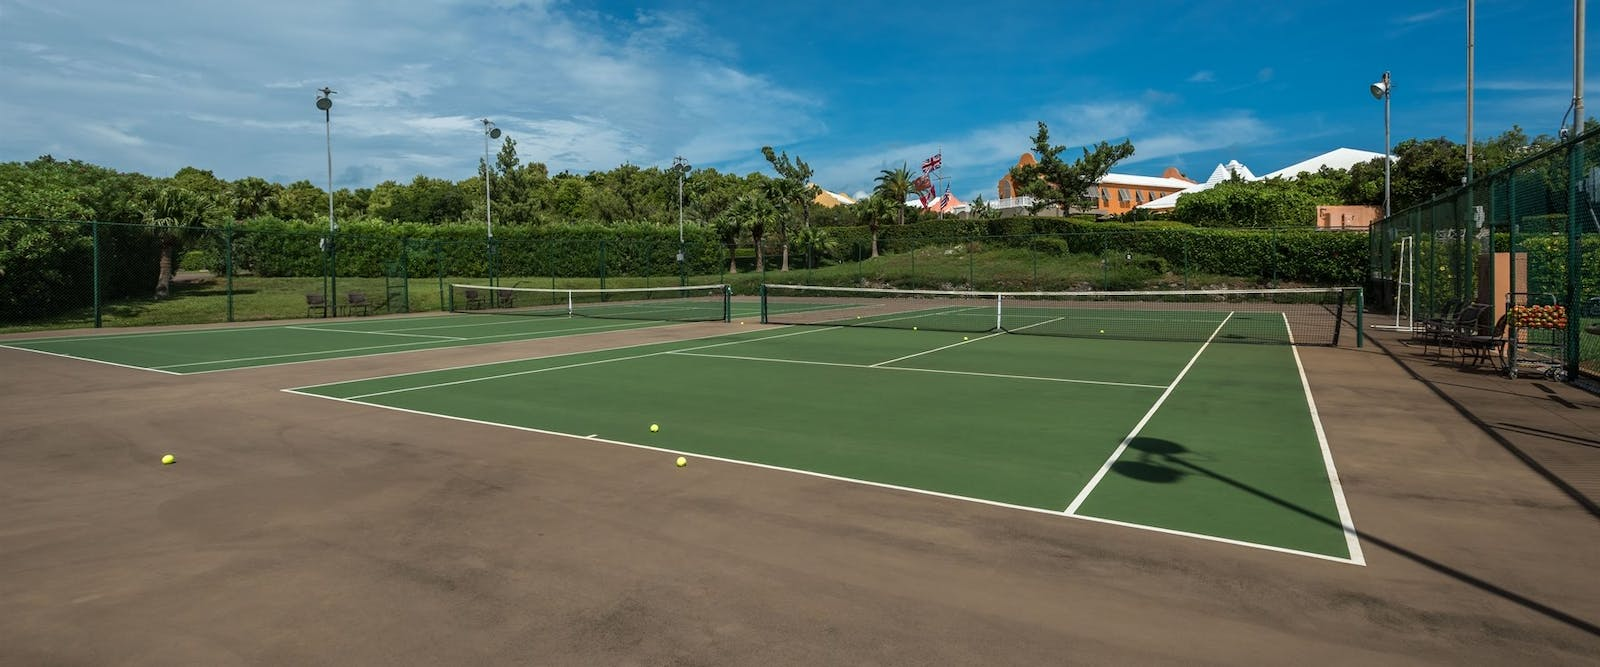 Tennis Courts at Grotto Bay, Bermuda